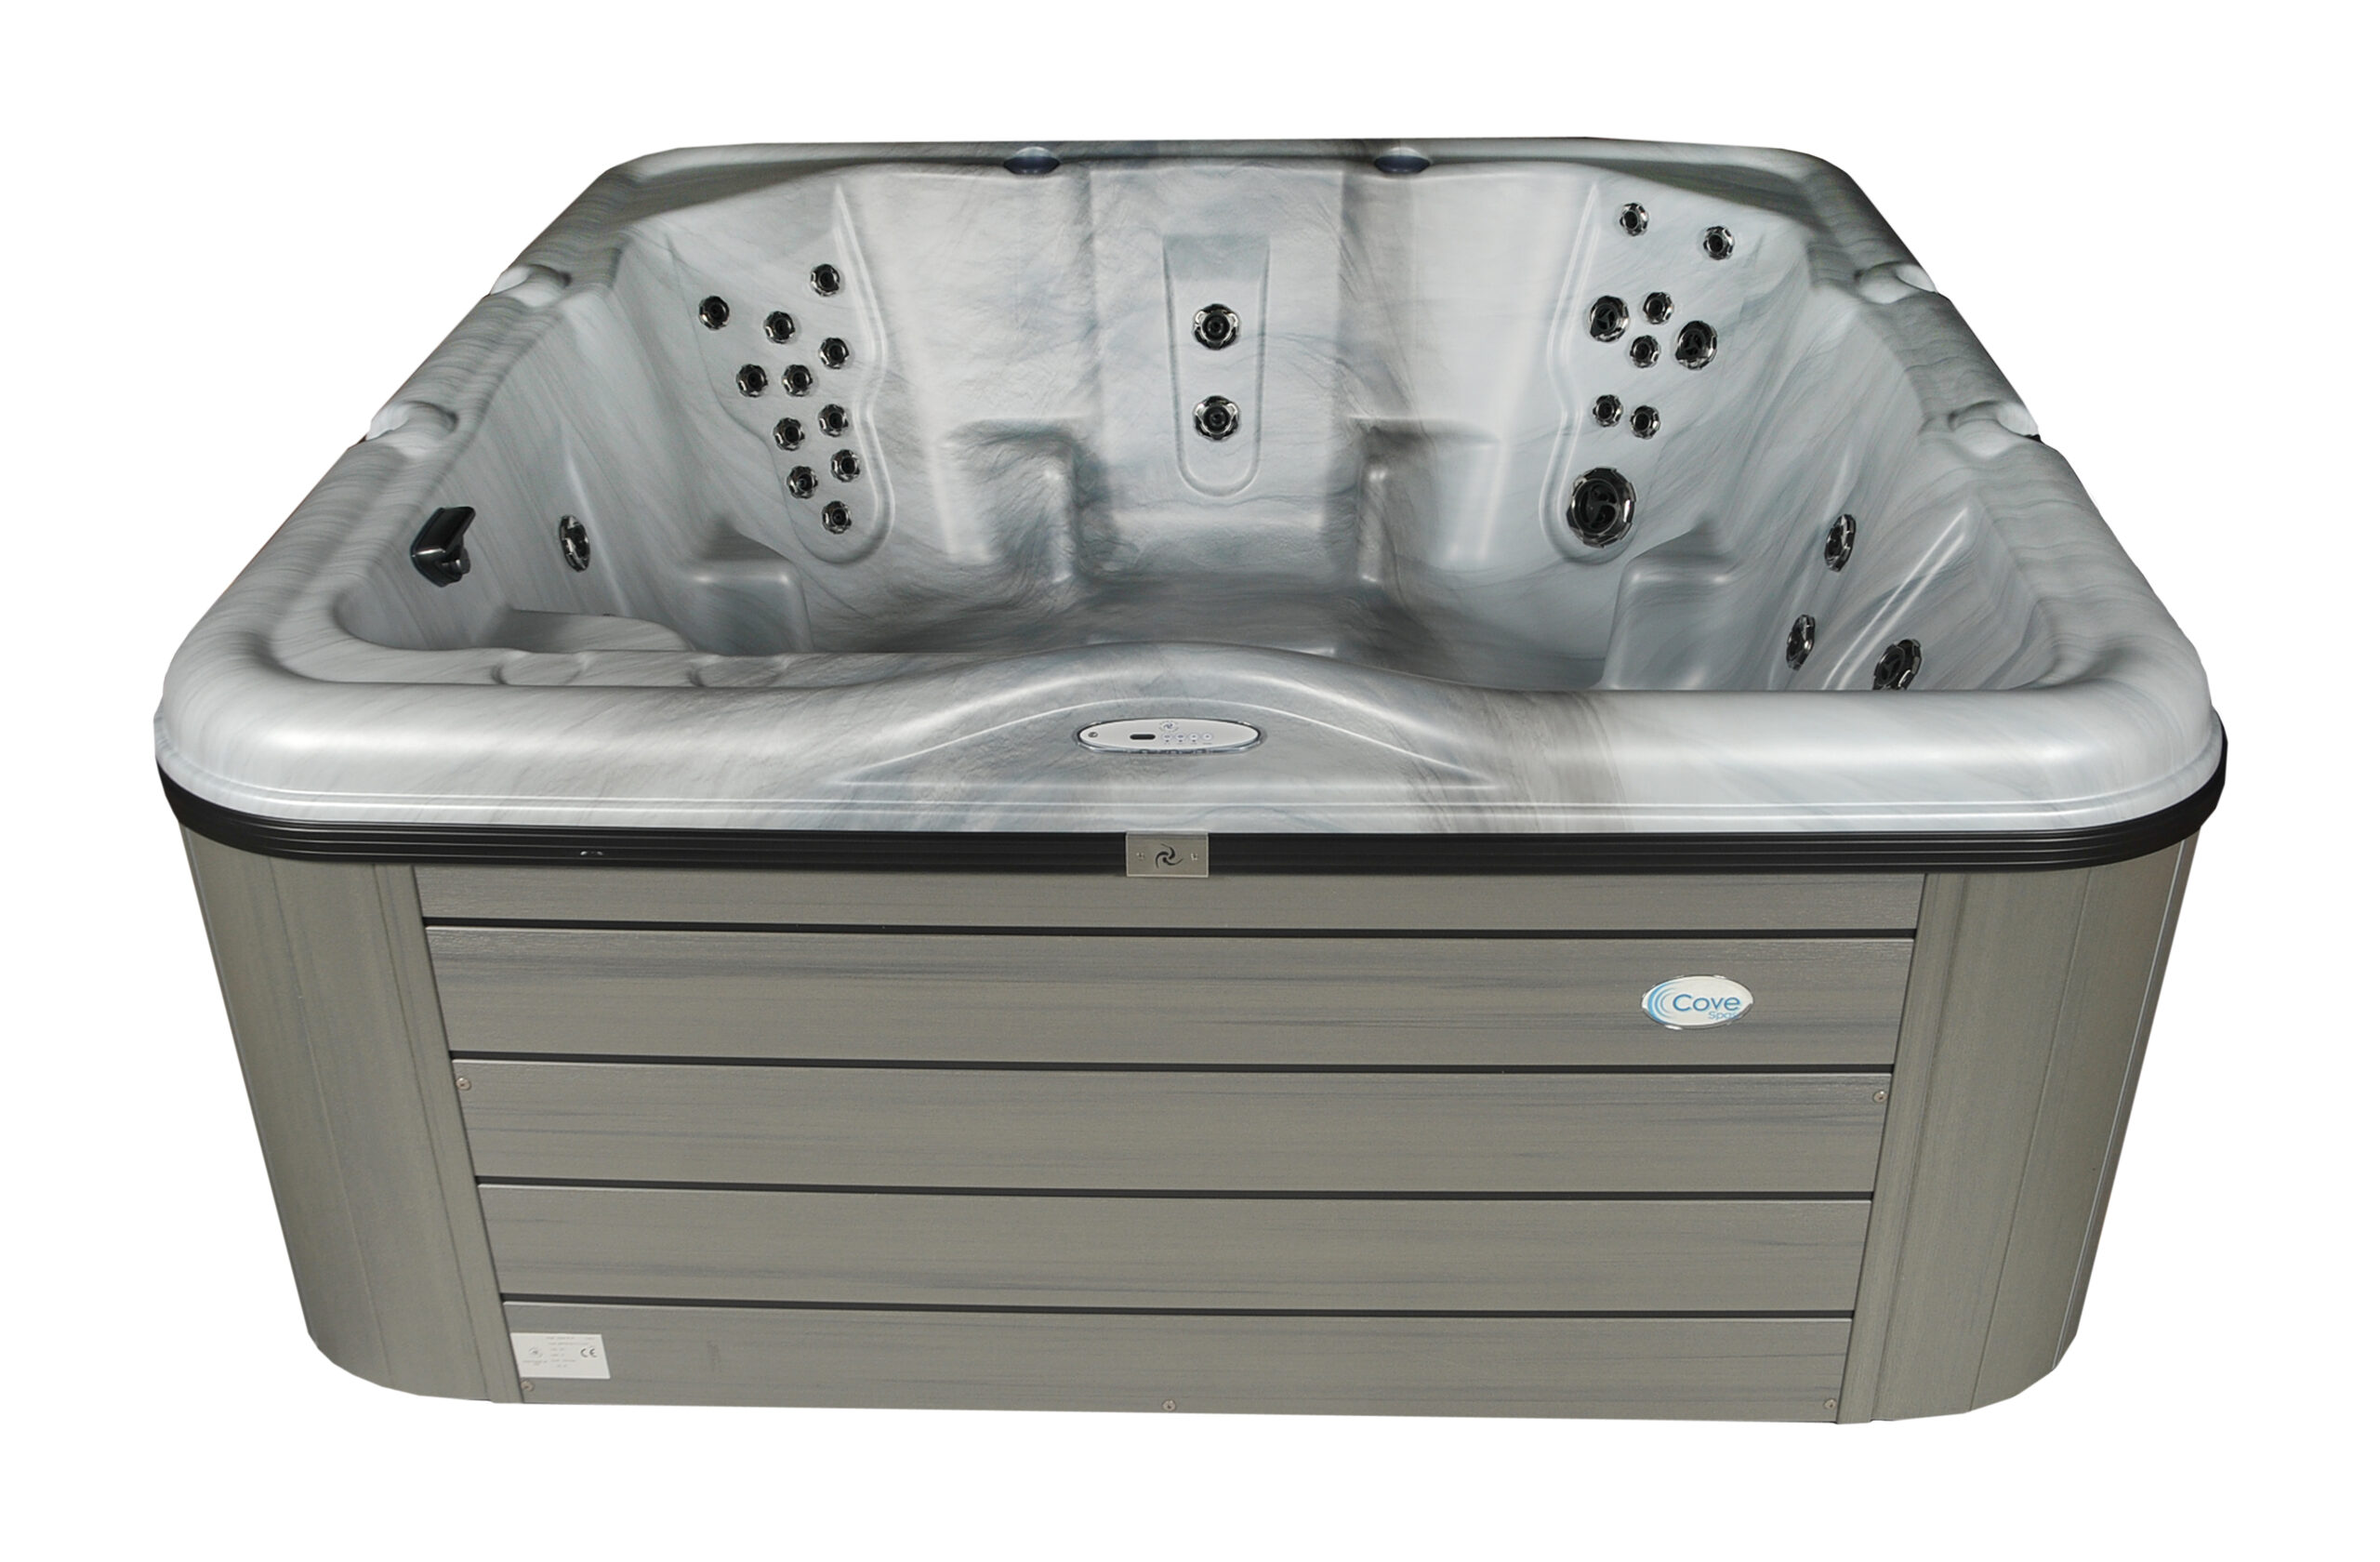 Large holiday home hot tub